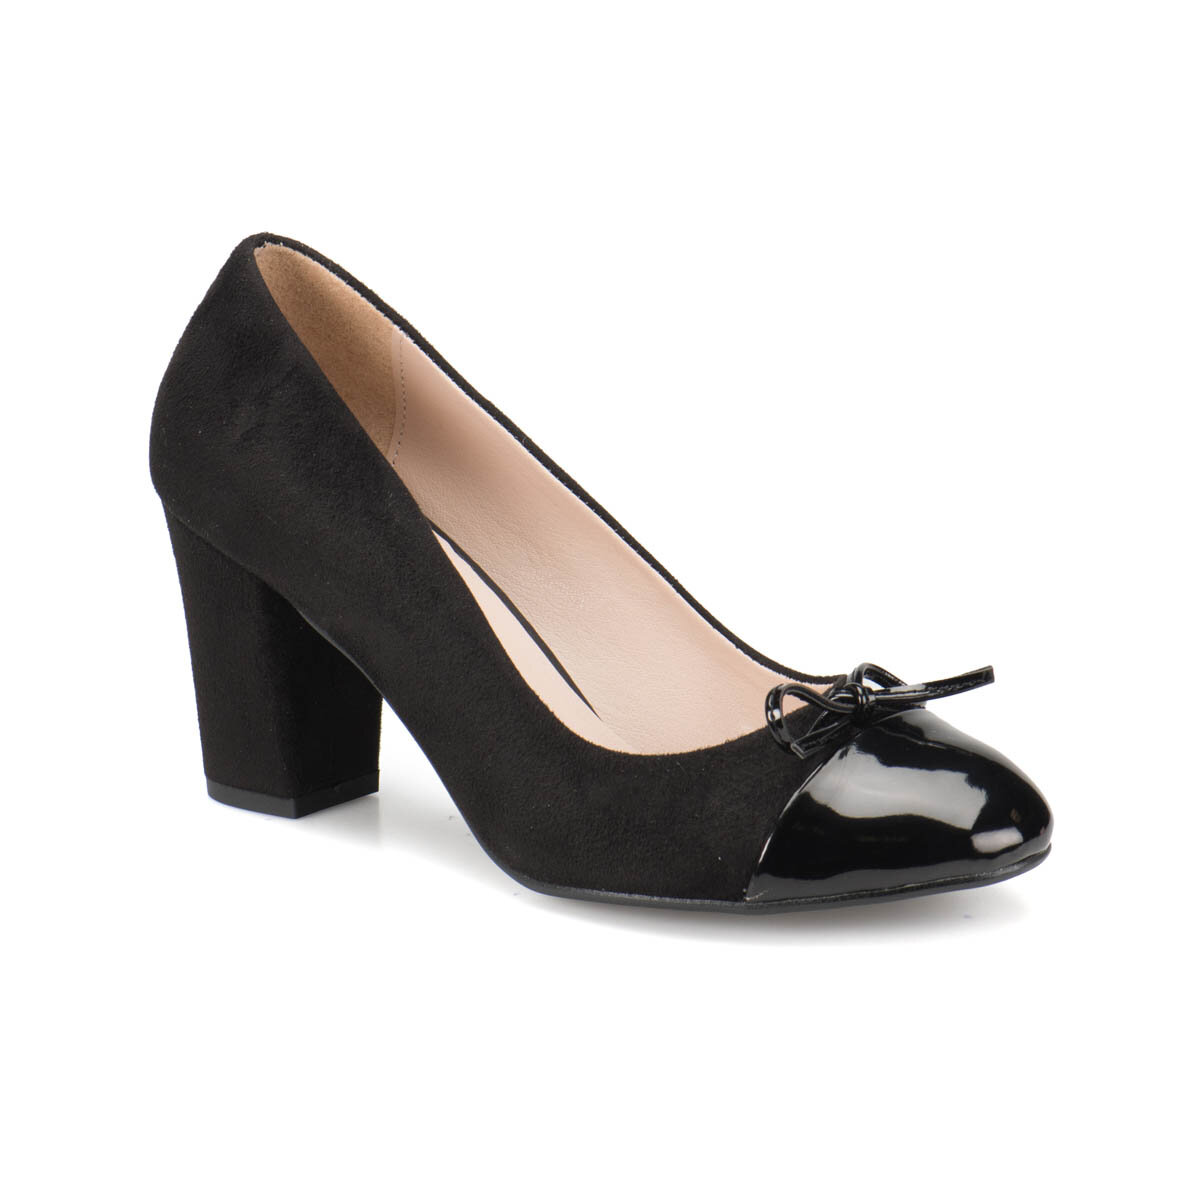 FLO Z261 Black Women 'S Classic Shoes BUTIGO